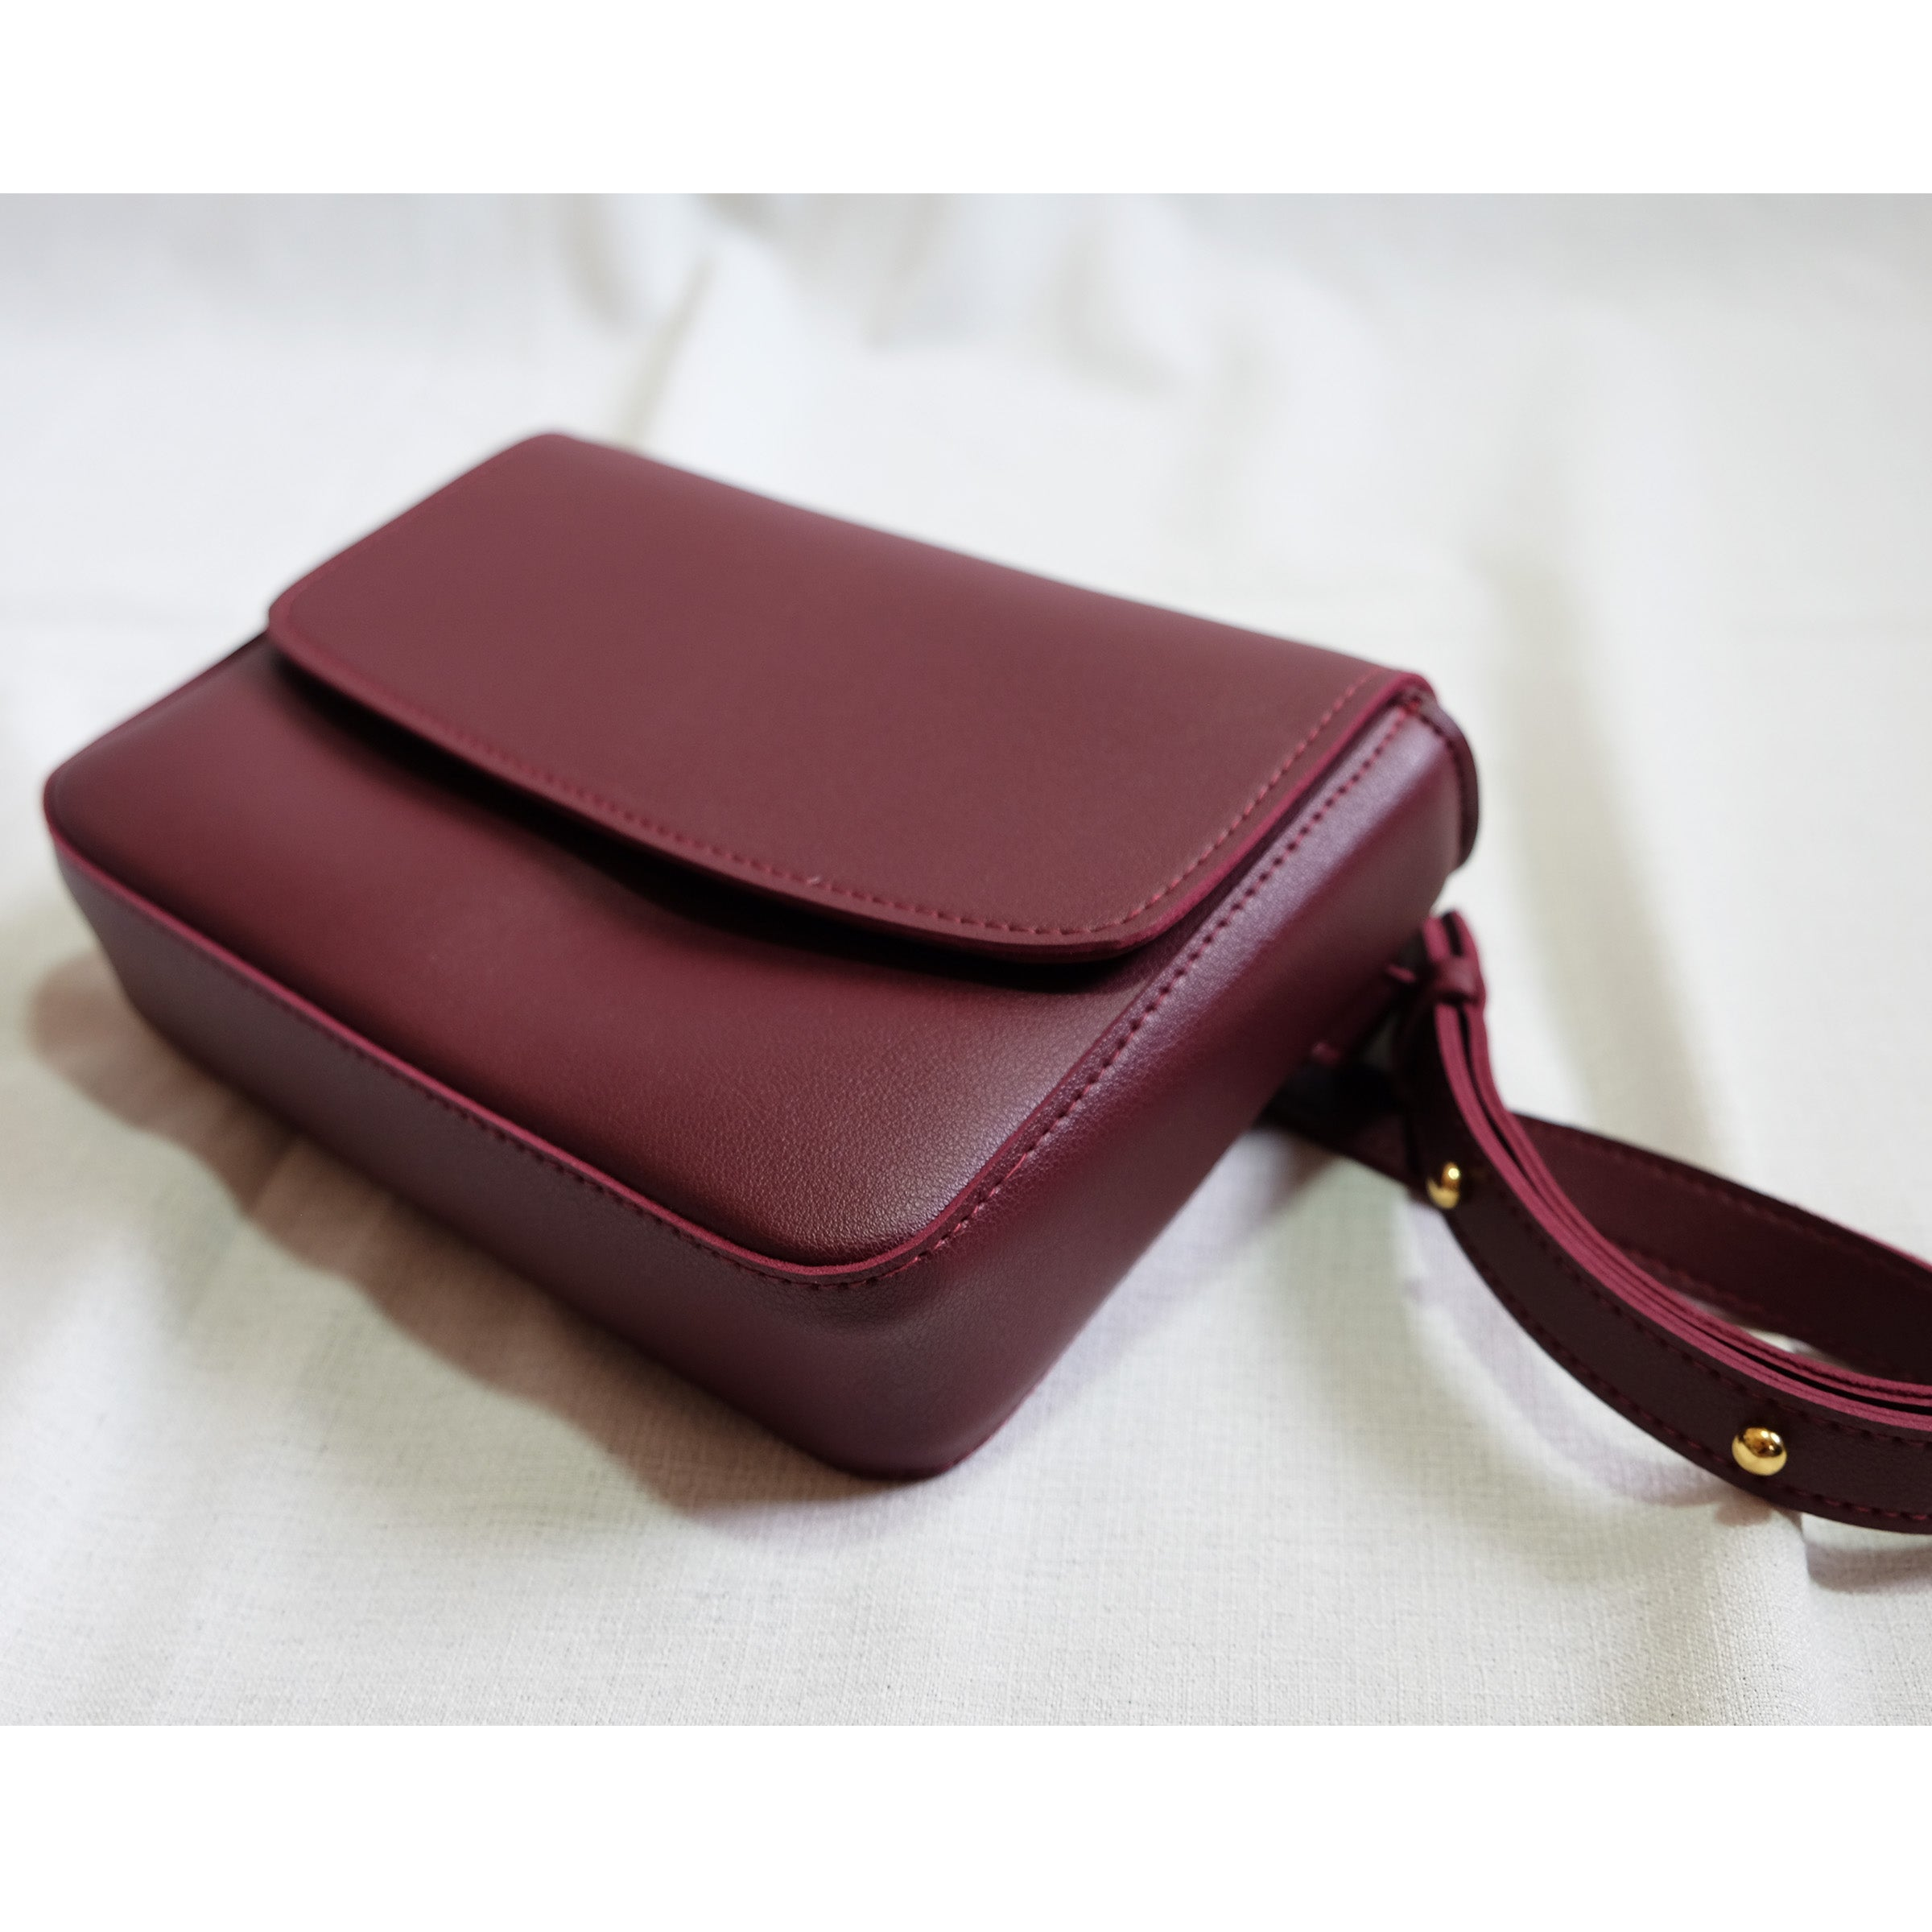 Astraea Convertible Sling in Wine